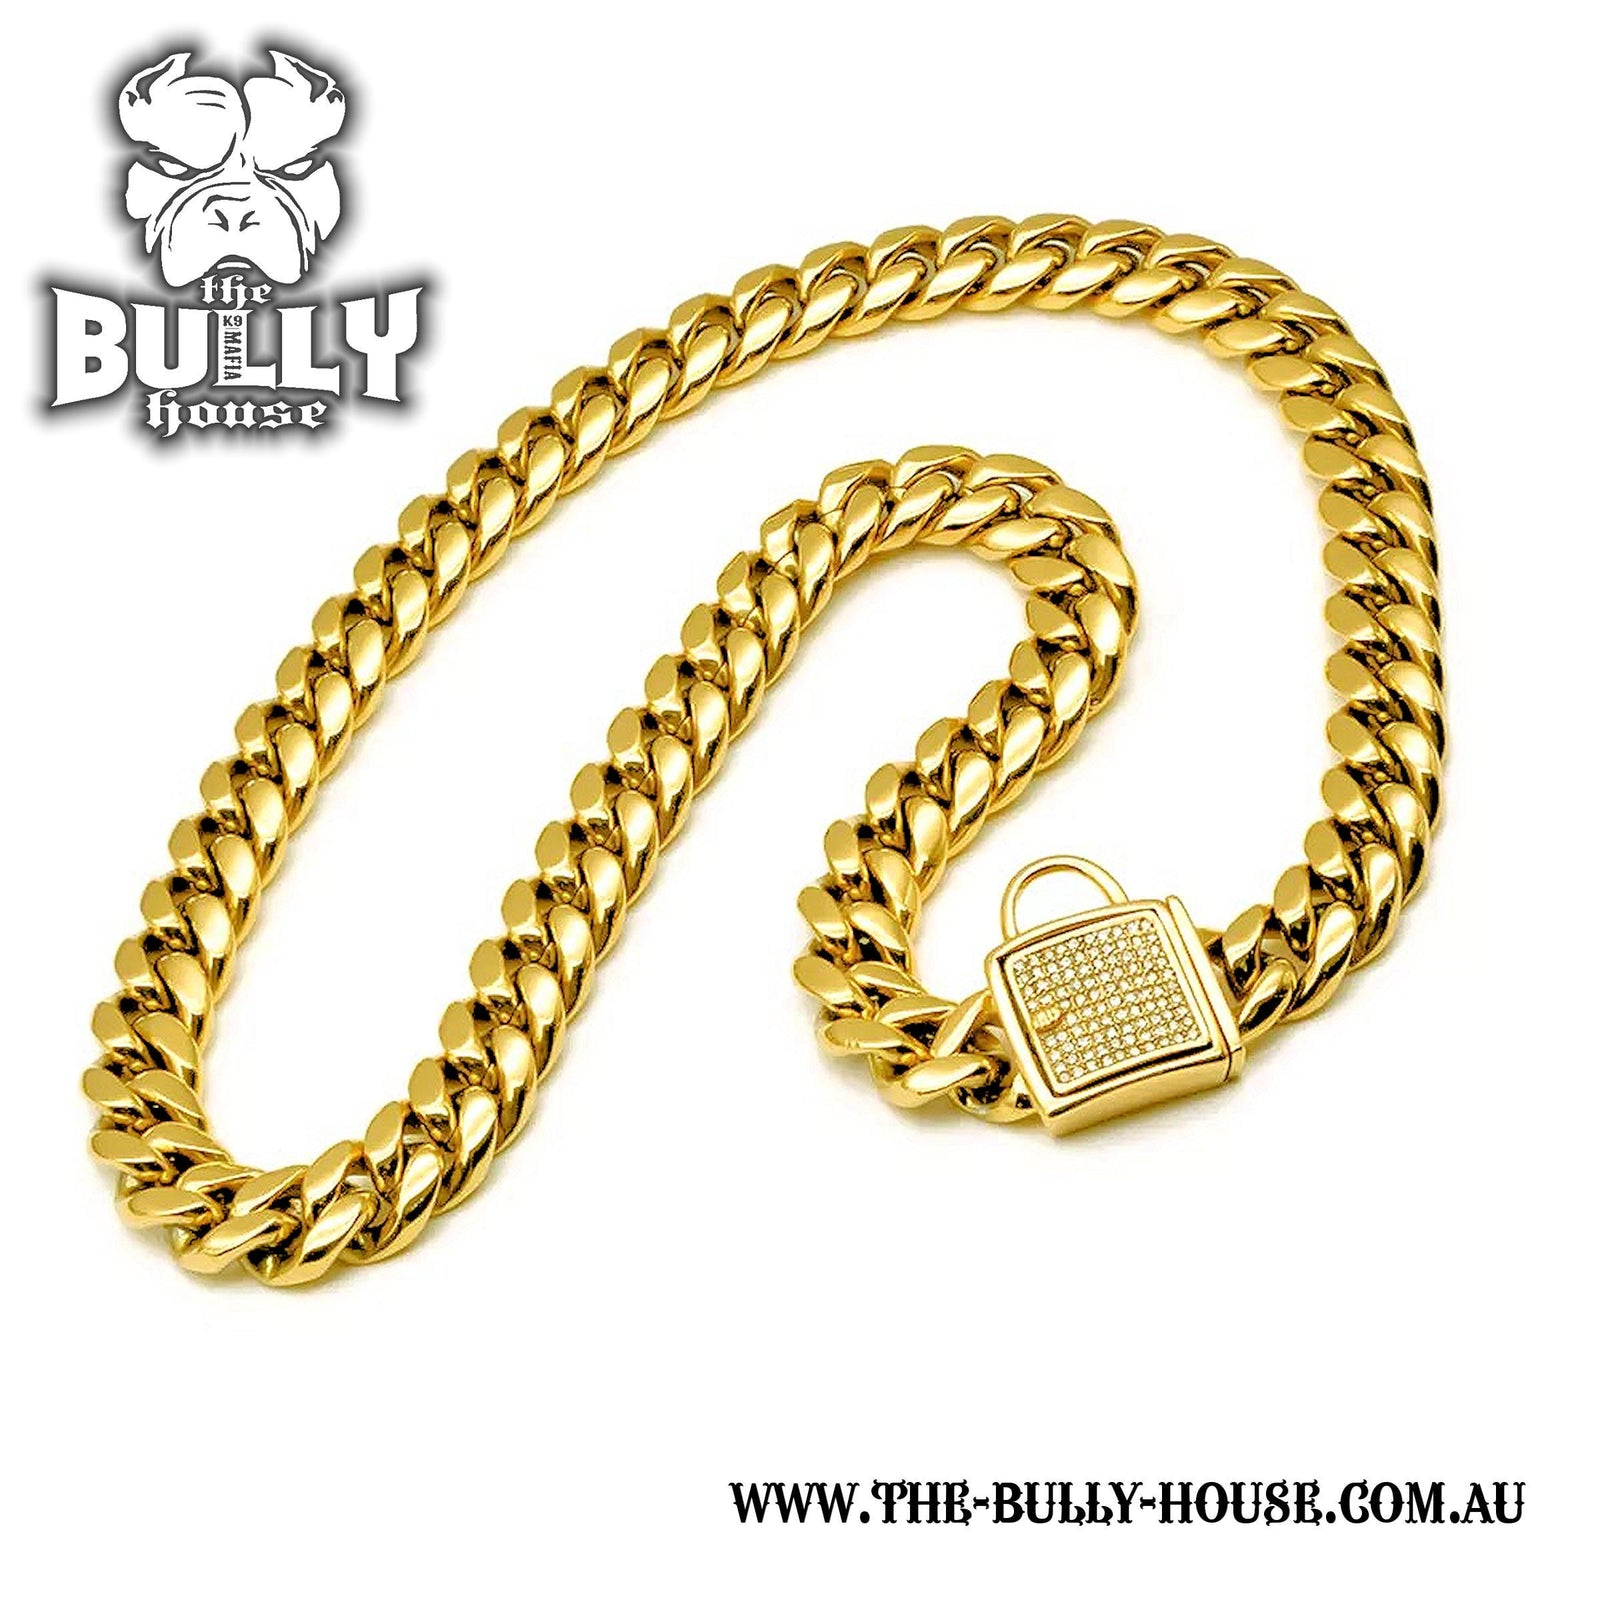 "The Bully House ""MIAMI Diamond Padlock"" - GOLD 14mm Wide - Small breed/puppy *** PRE RESERVE Landing approx end SEPTEMBER/OCT ***"